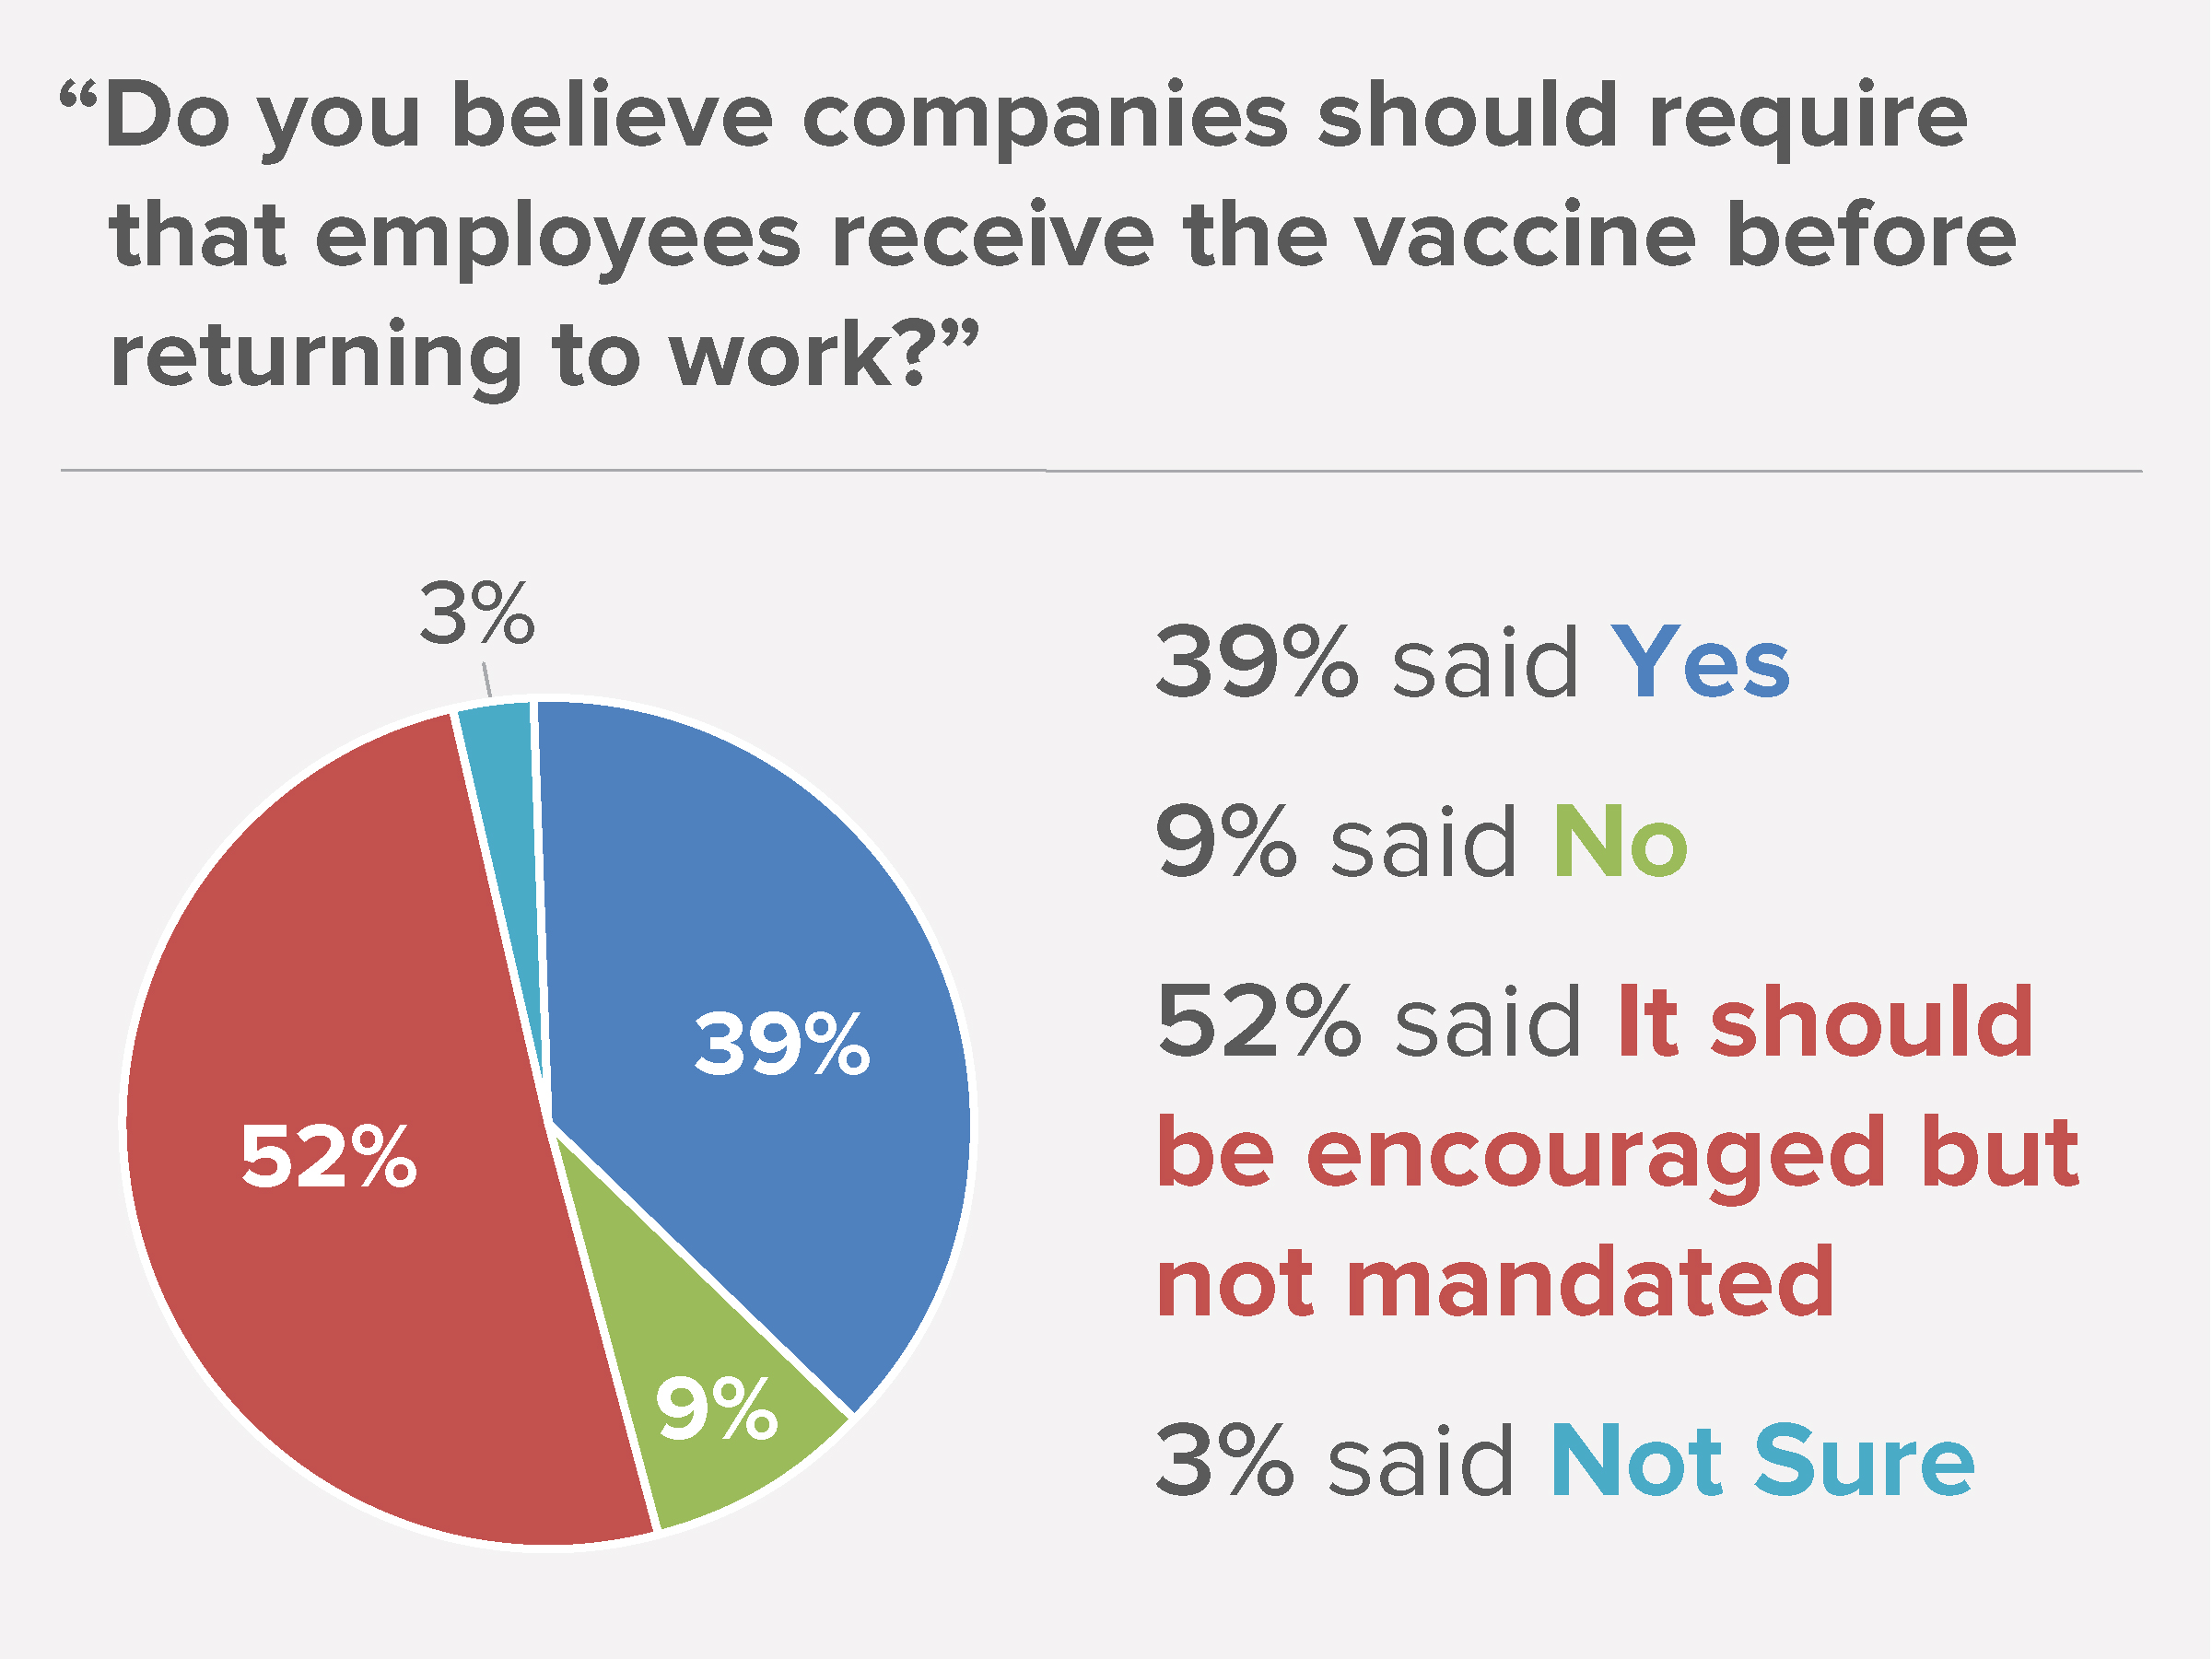 Image: Pie Chart representing vaccination of employees